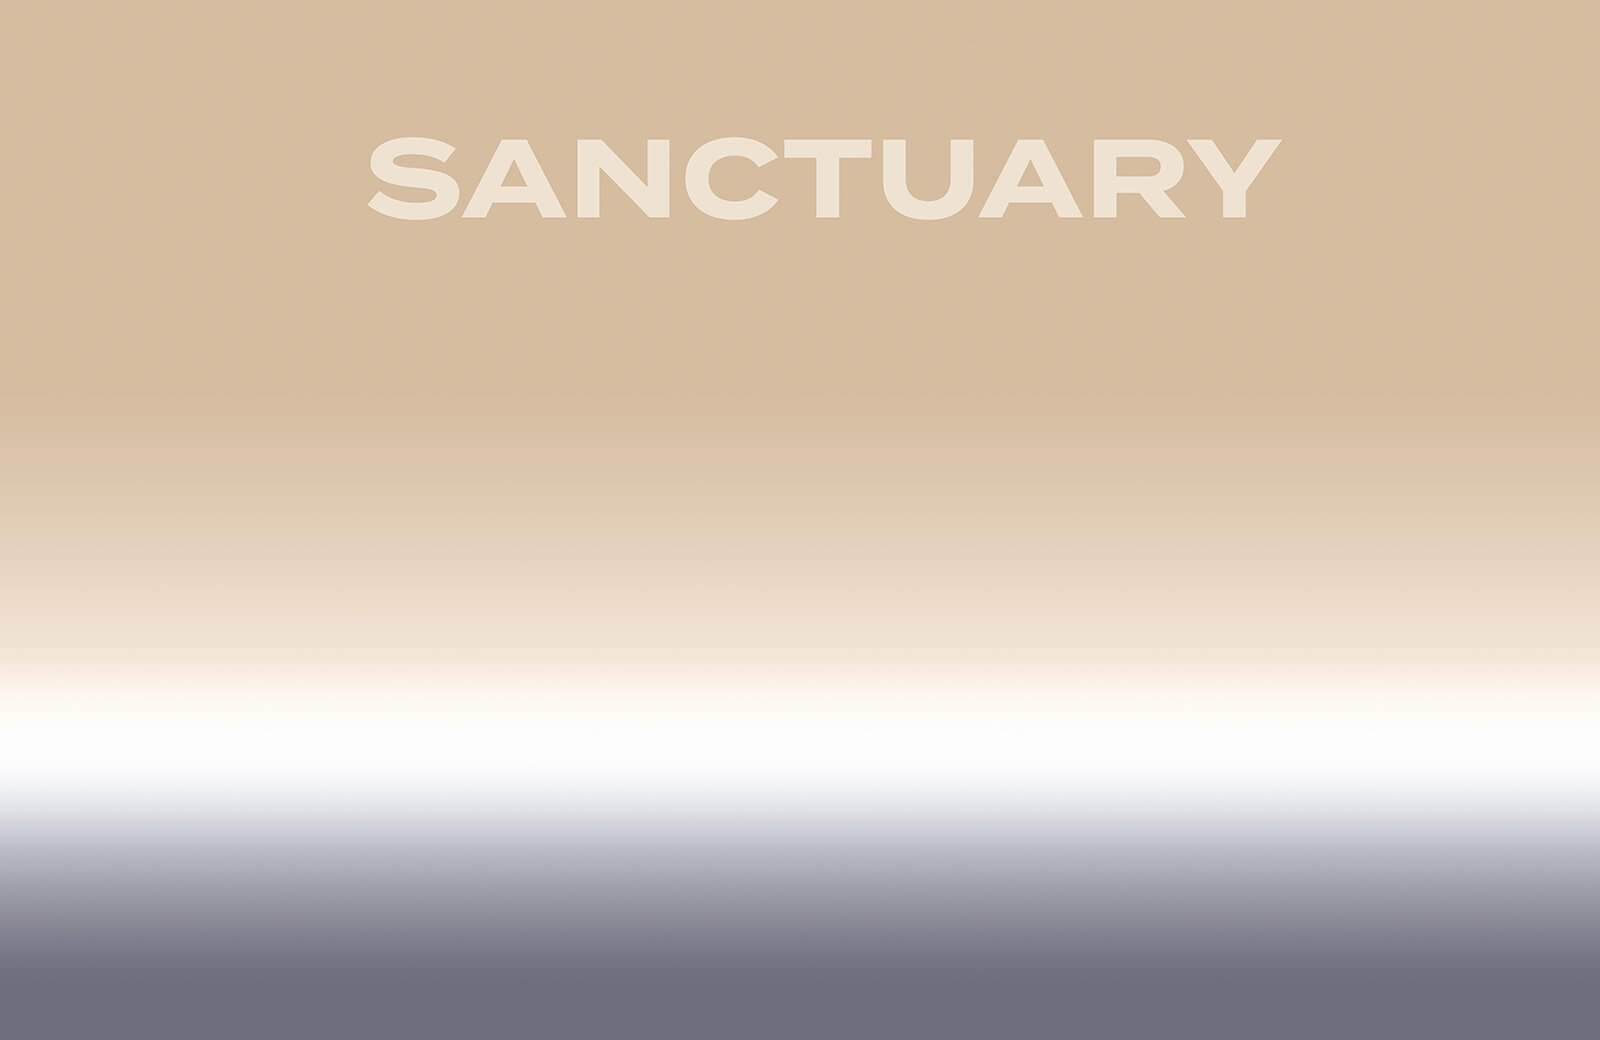 Sanctuary Shades of Sand and Grey - Artwork